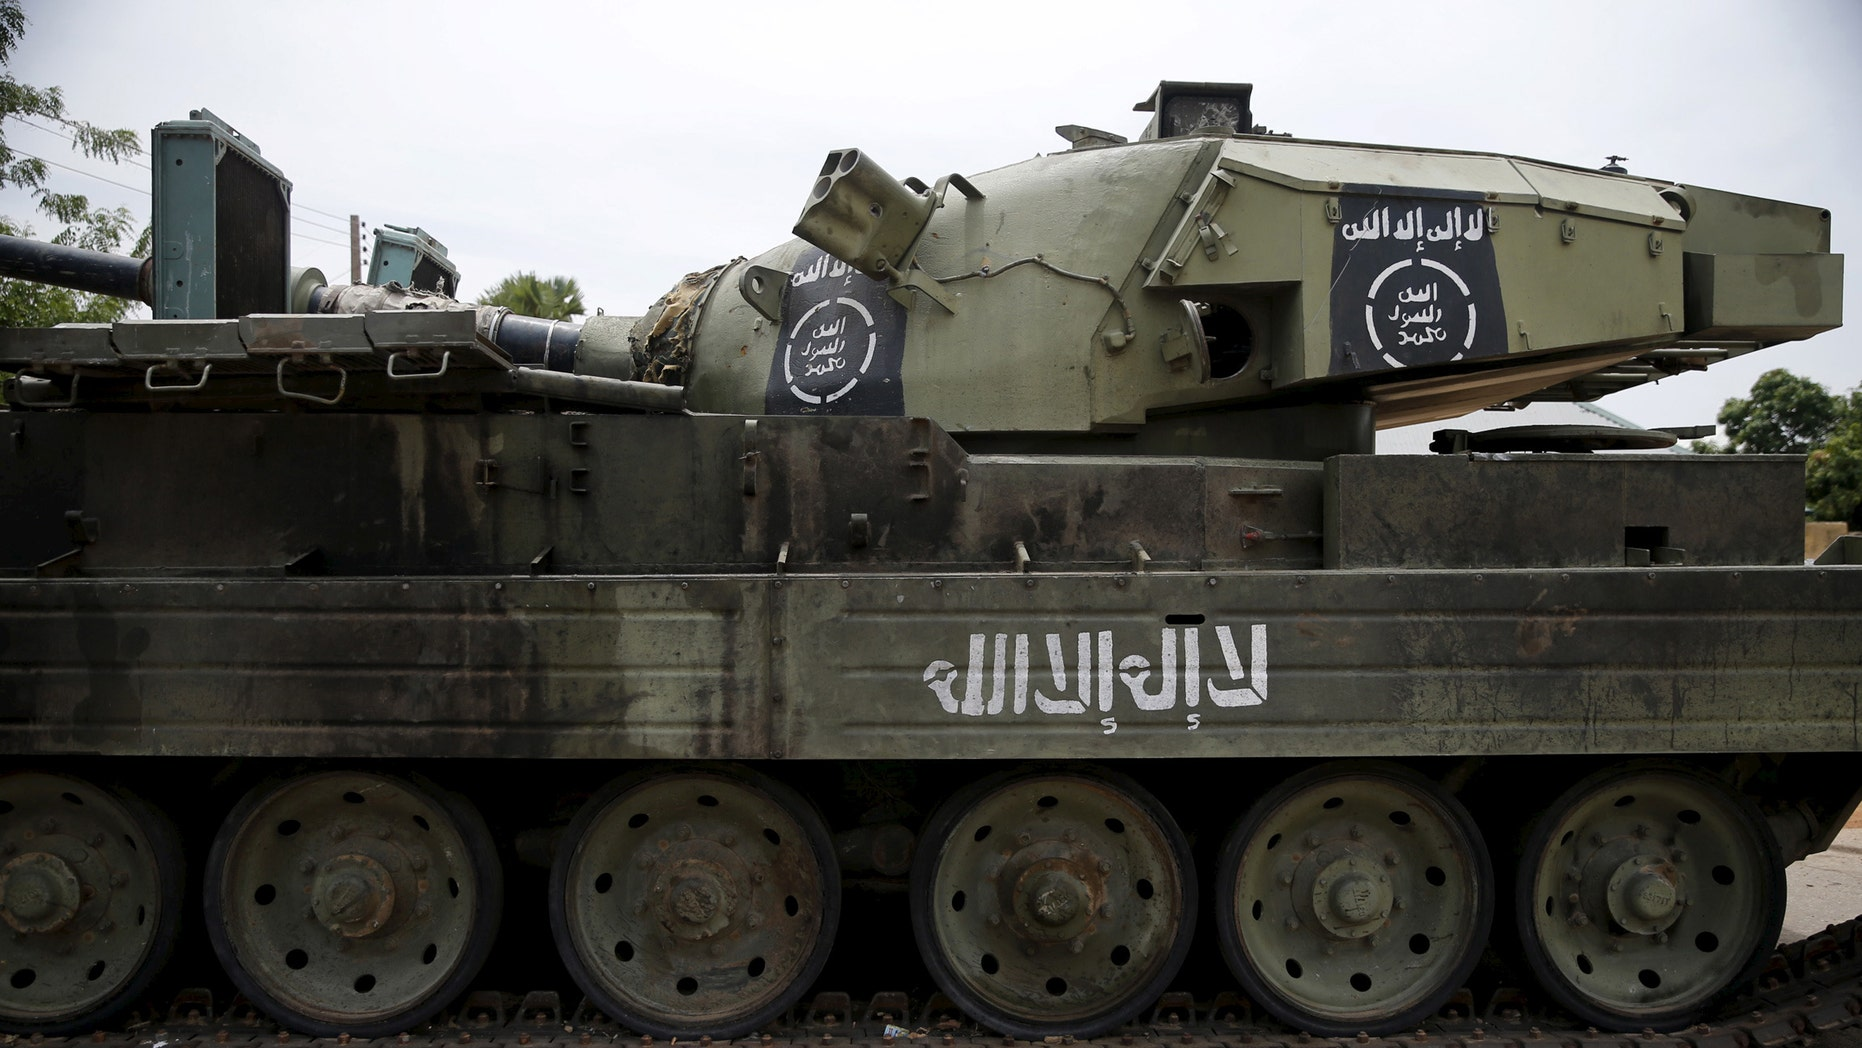 File photo - An armoured tank is seen abandoned along a road in Bazza town, after the Nigerian military recaptured it from Boko Haram, in Adamawa state May 10, 2015. (REUTERS/Akintunde Akinleye)